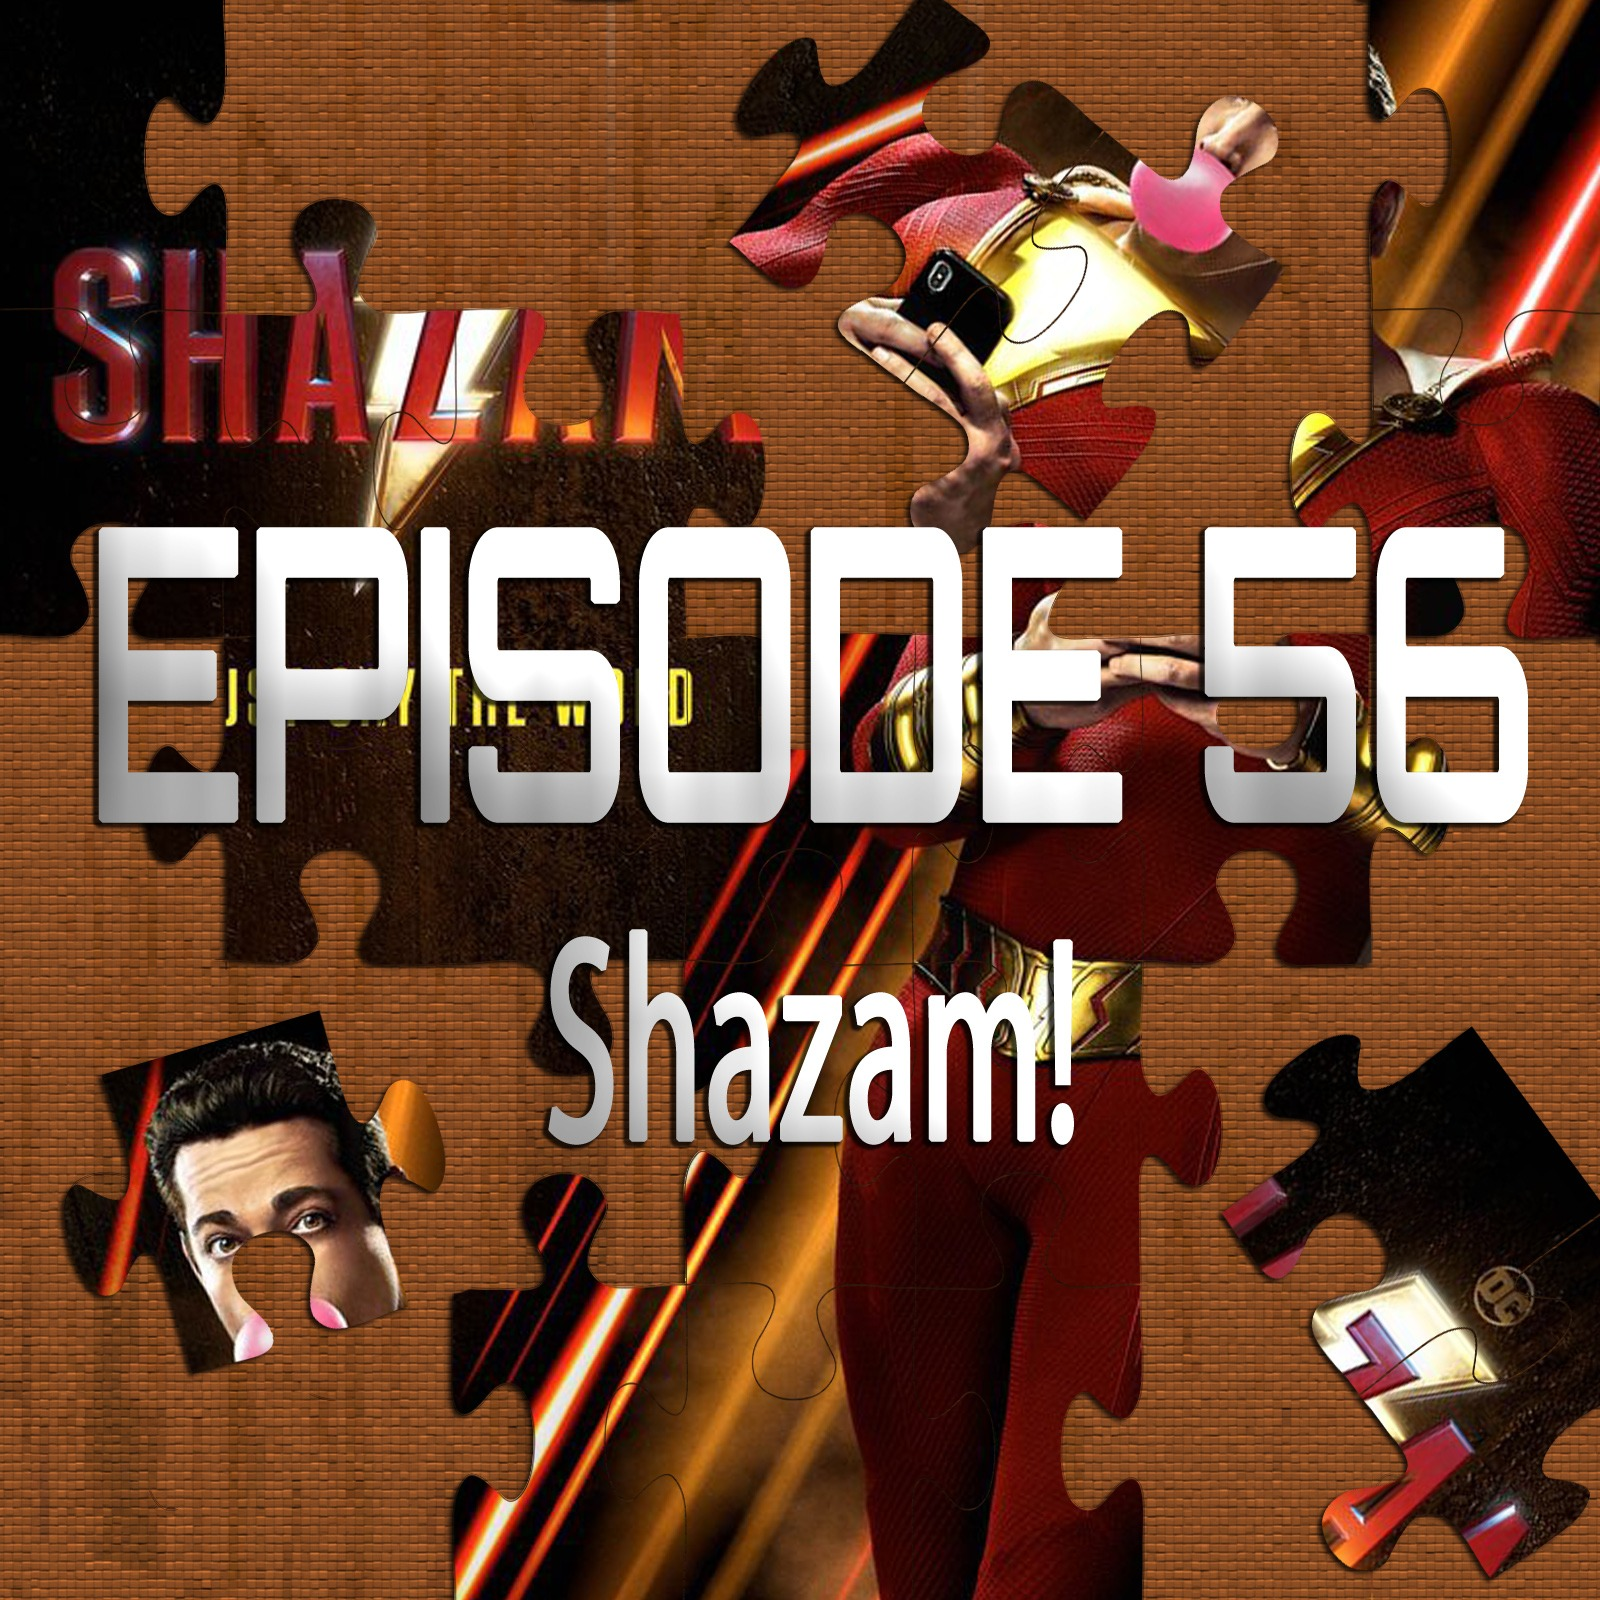 Shazam! (Featuring Chad Clinton Freeman)